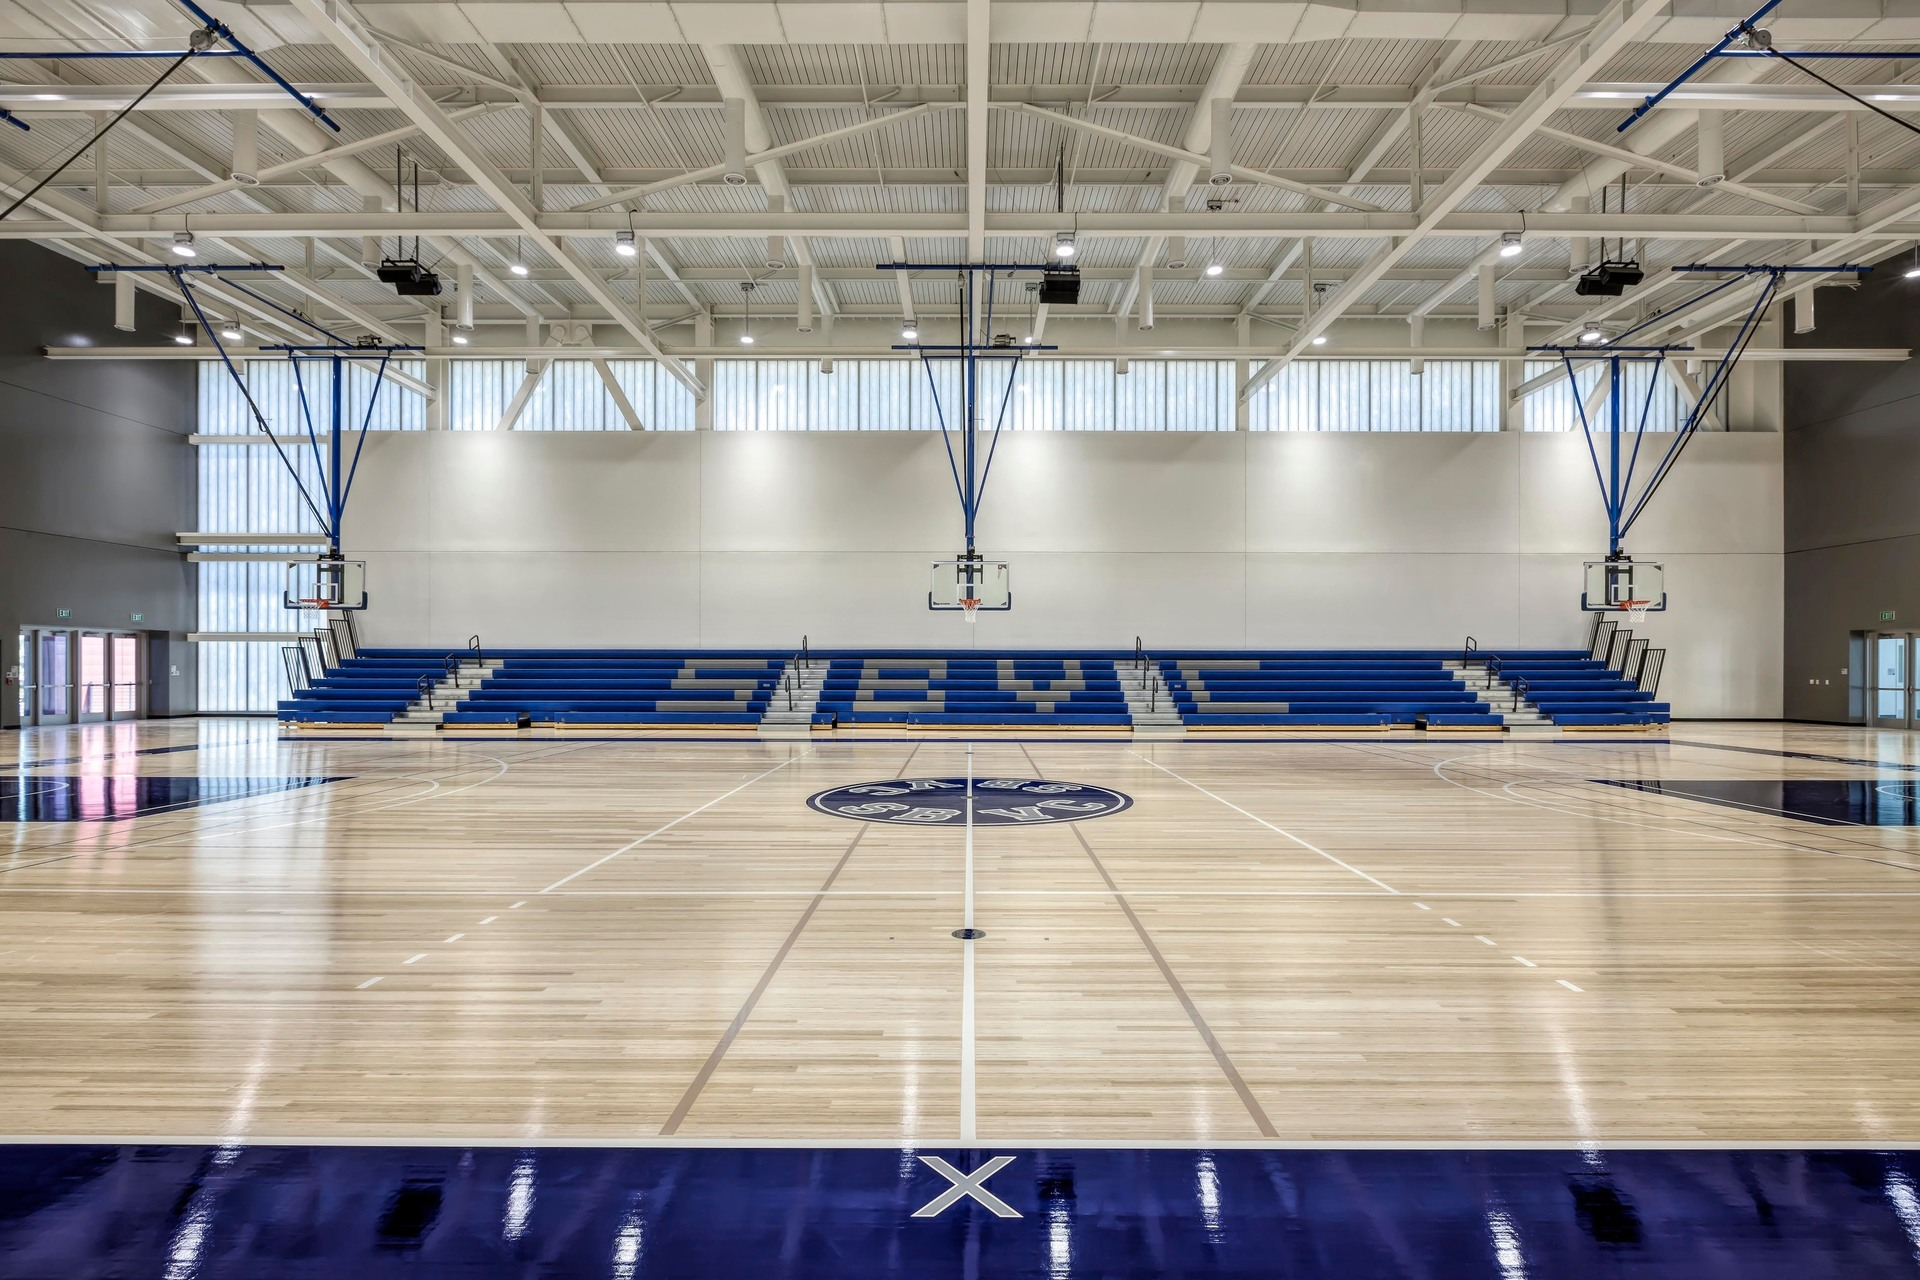 Meteor's iconic high ceiling products illuminate this mix-use gymnasium at the San Bernadino Valley College